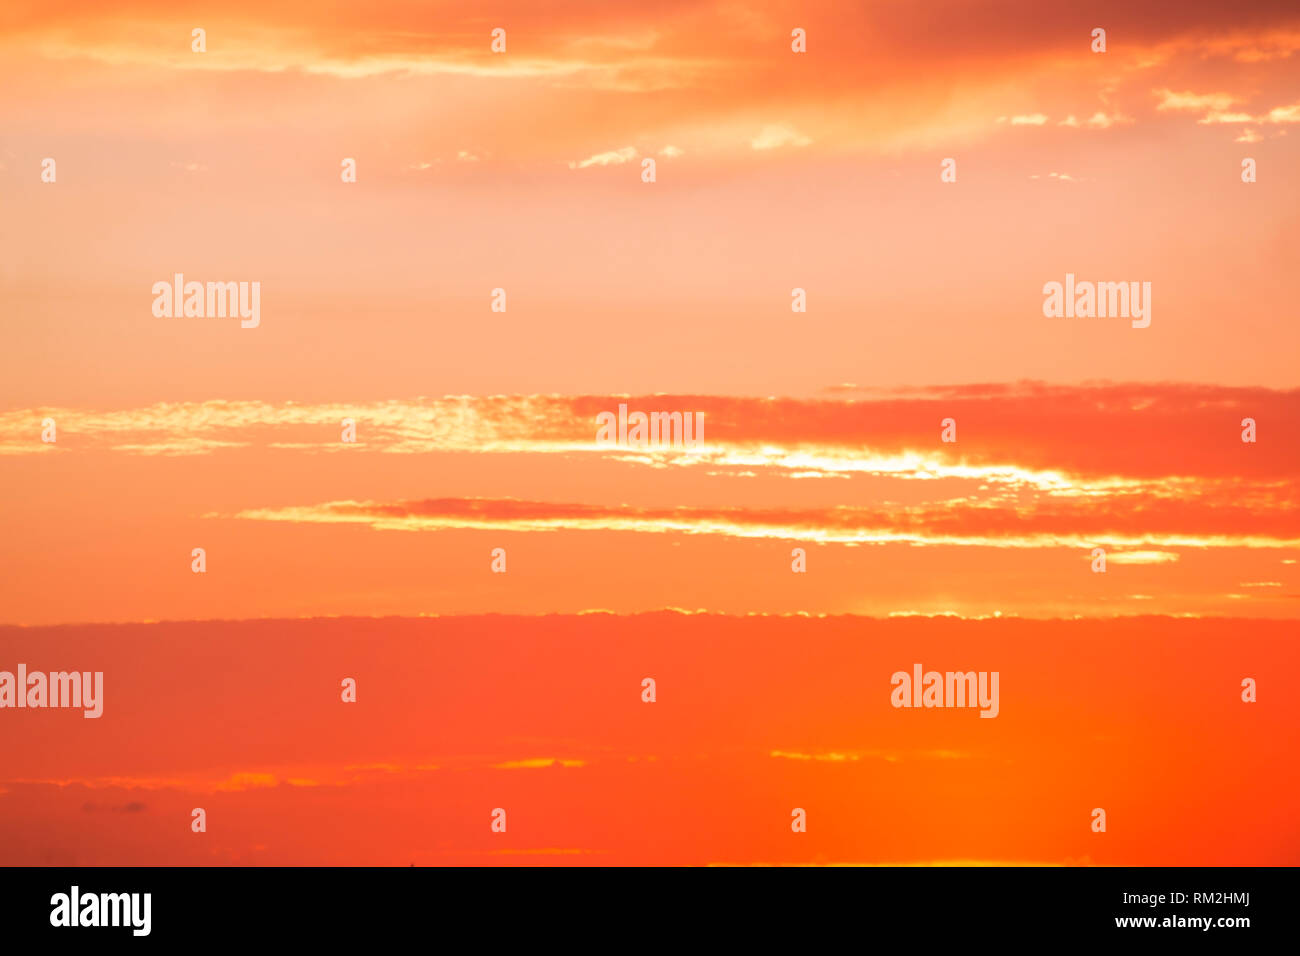 Bright orange sky in sunset - Stock Image